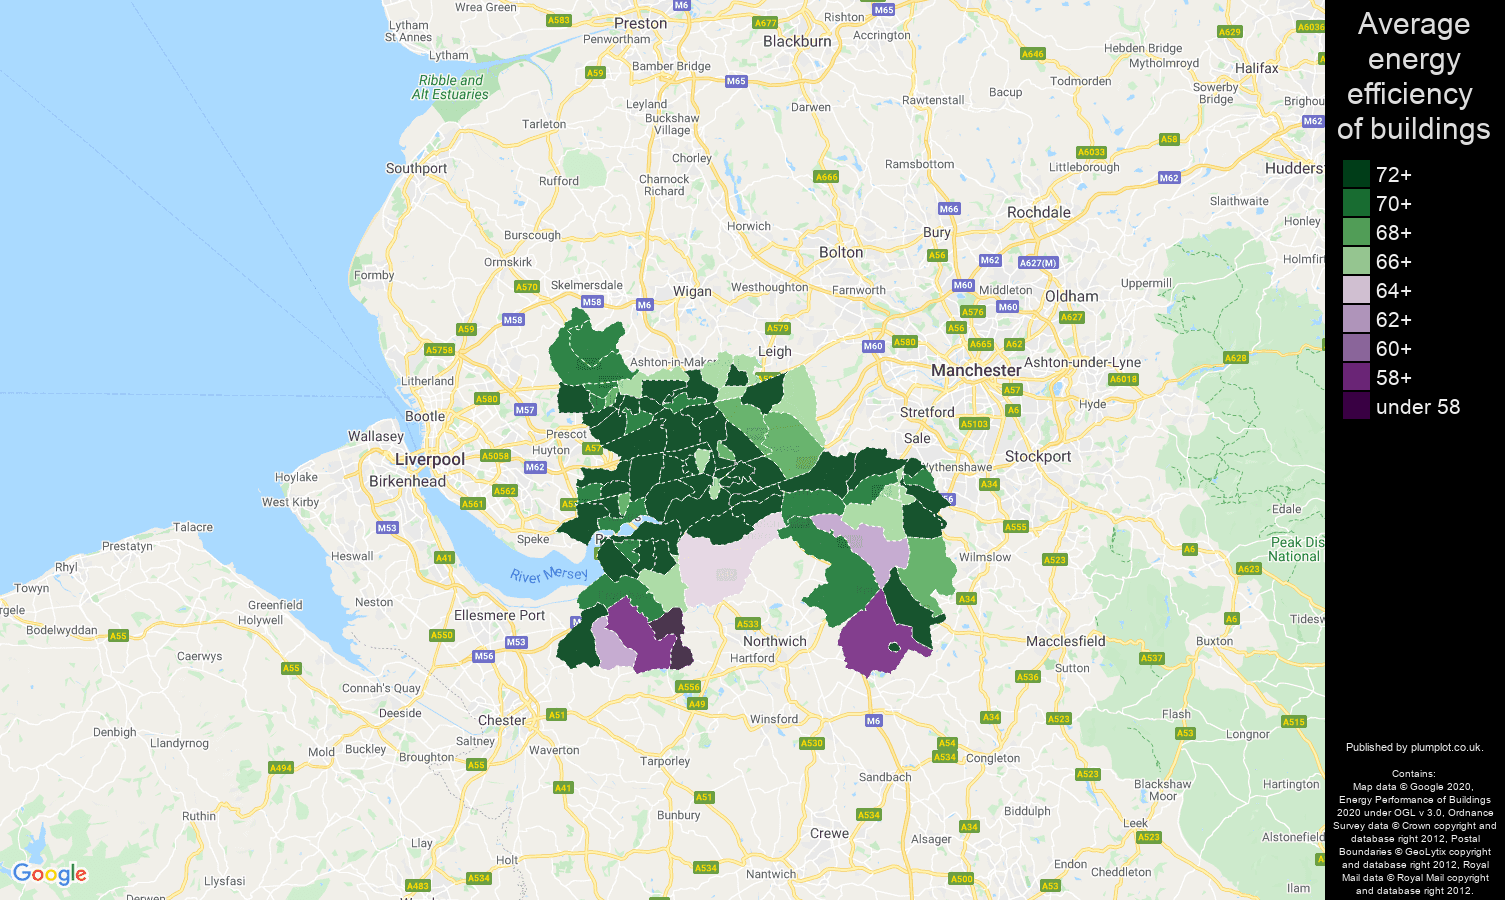 Warrington map of energy efficiency of flats